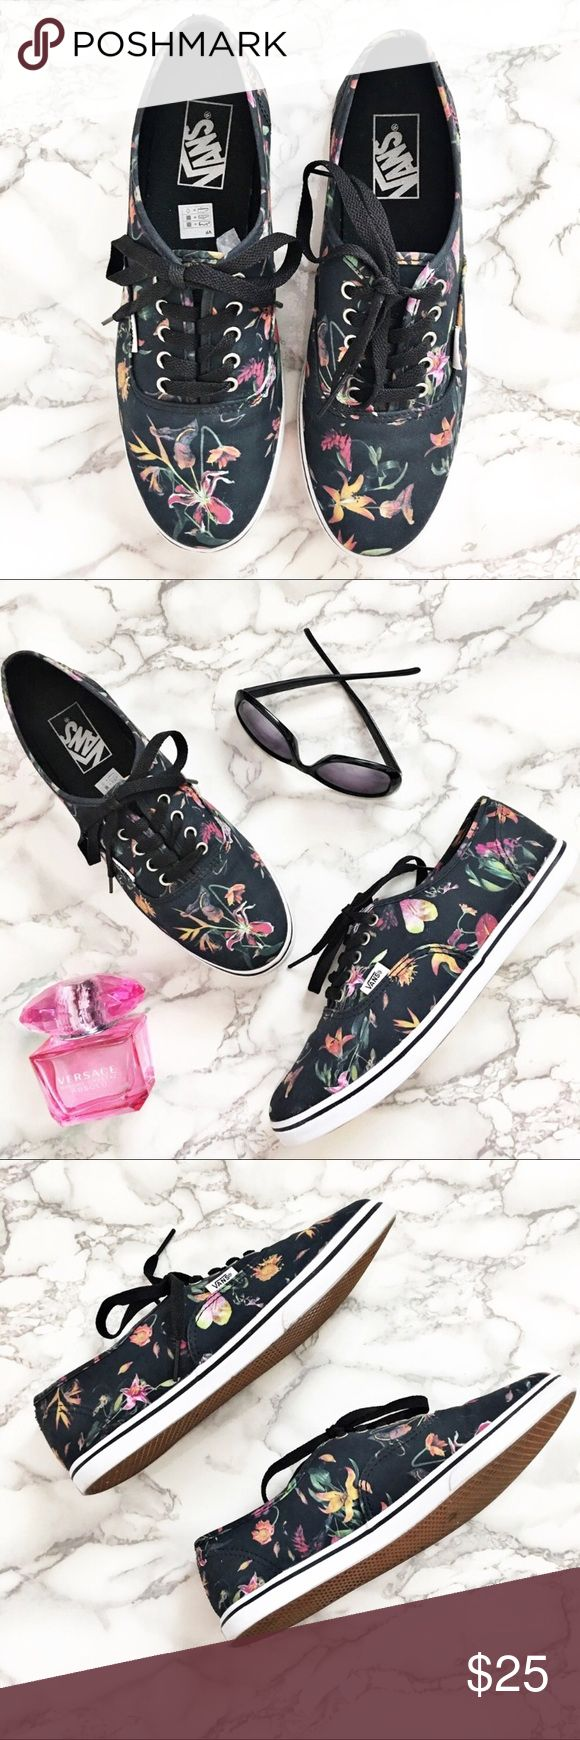 •VANS• Black  Floral Bloom Sneakers Trainers 10 These. Are. Adorable. Bought them off an AMAZING Posher but they don't work for me. I'm very good condition...Vans Bloom Floral Sneakers Women's Size 10. Have a sweet vintage retro vibe to them ... they are SO CUTE!!!! From a smoke free home. For as a true women's 10.  Vans Shoes Sneakers